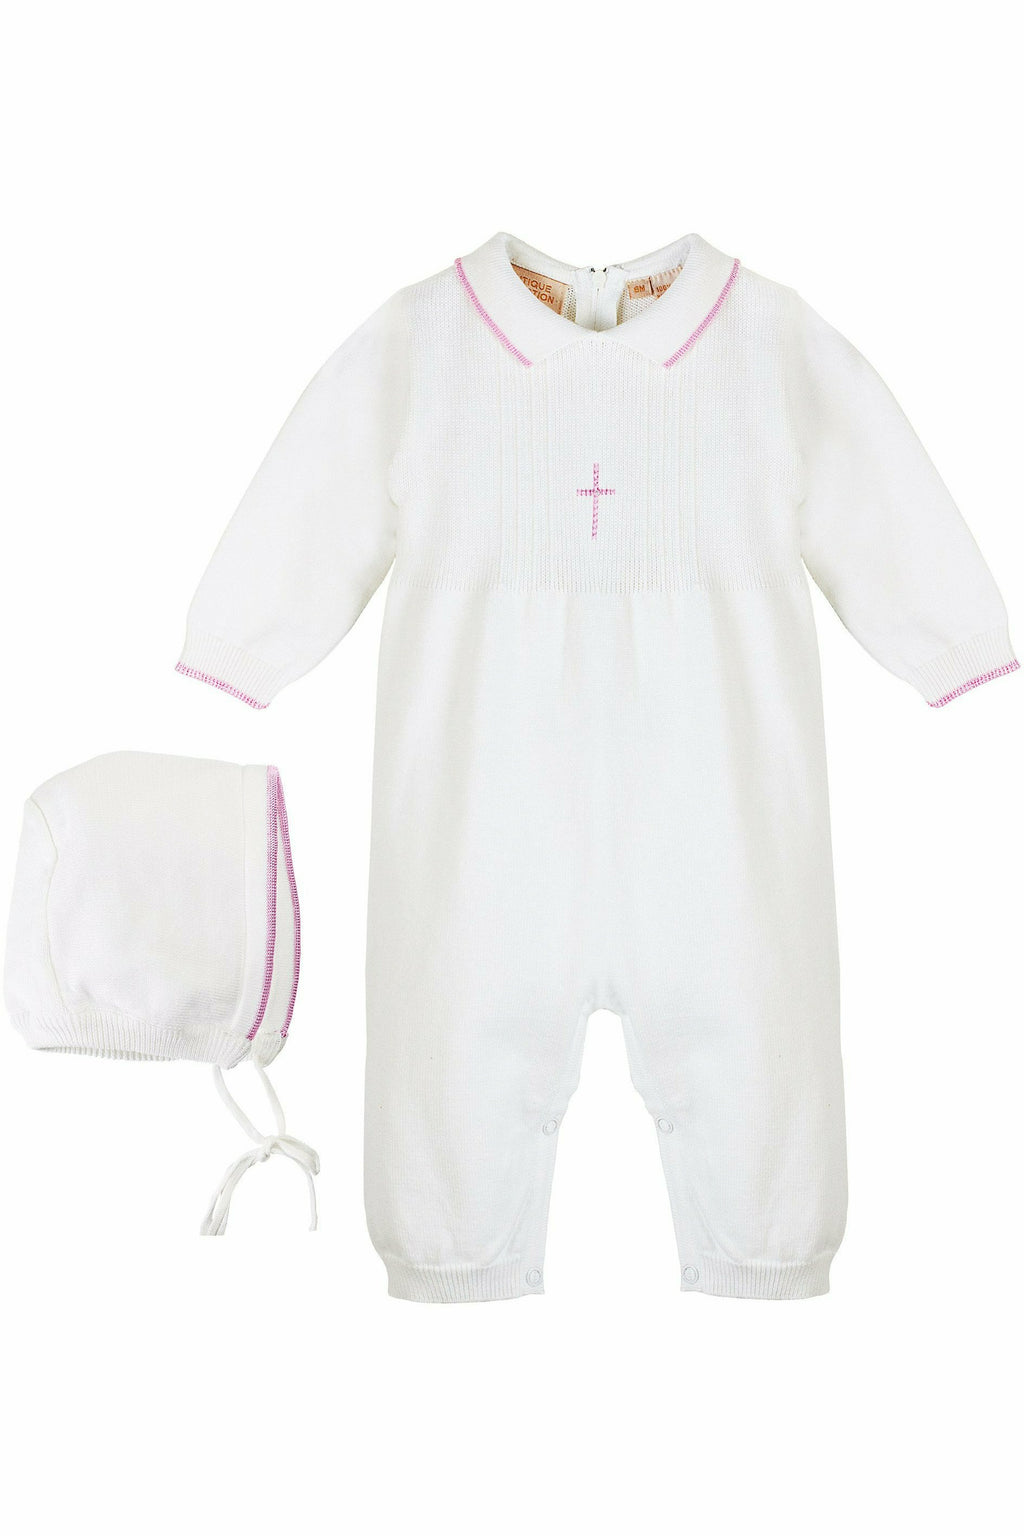 Baby Girl Knit Pearl Pink Cross Outfit + Bonnet